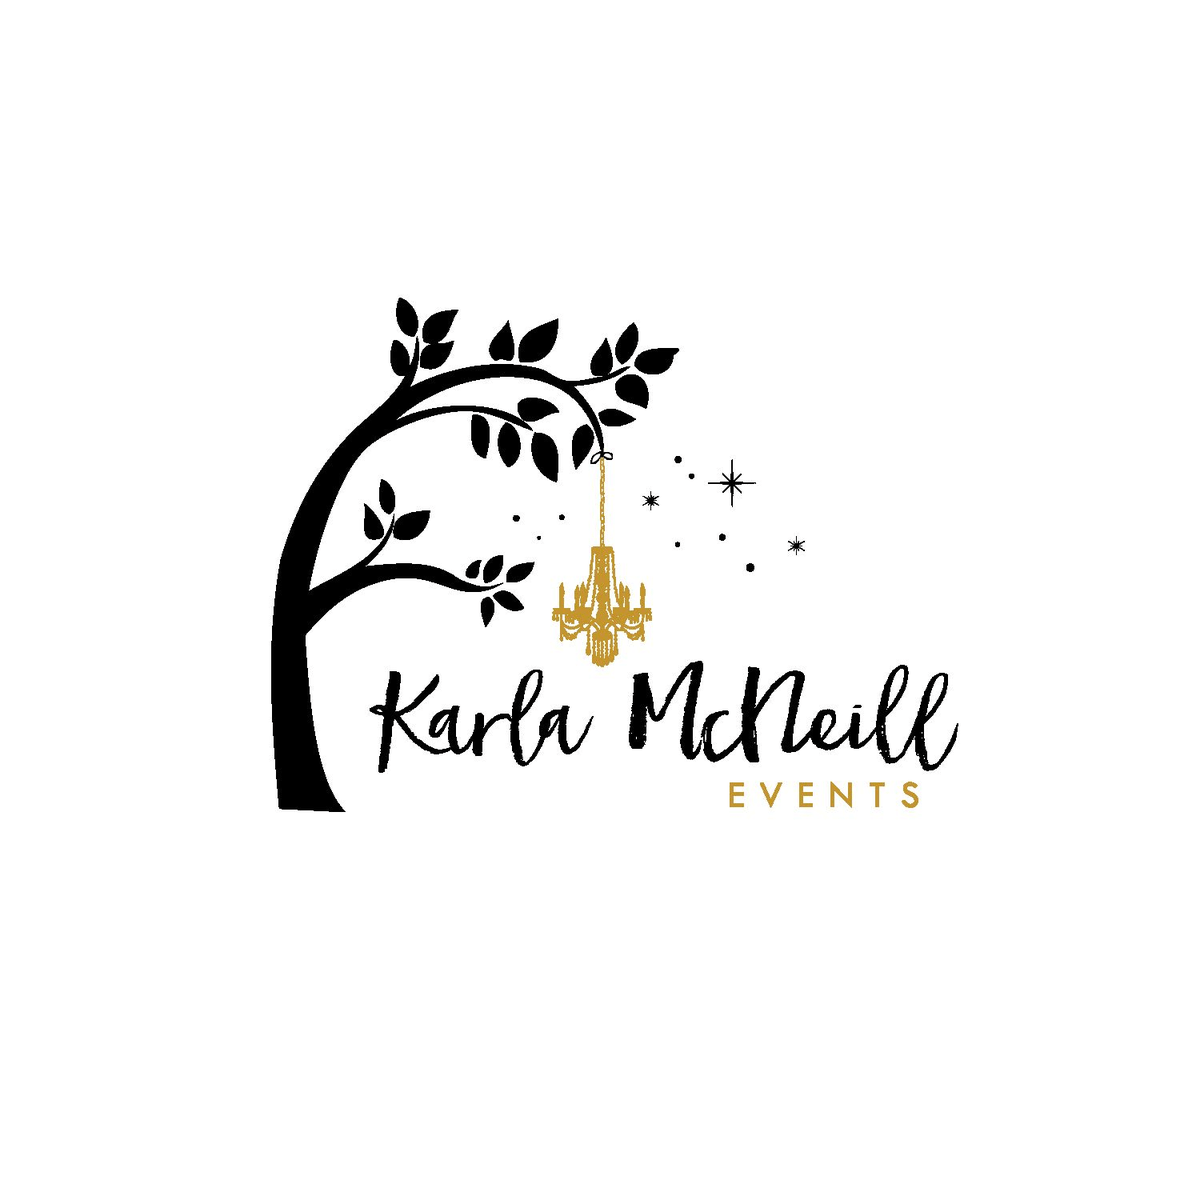 Karla Mcneill Events